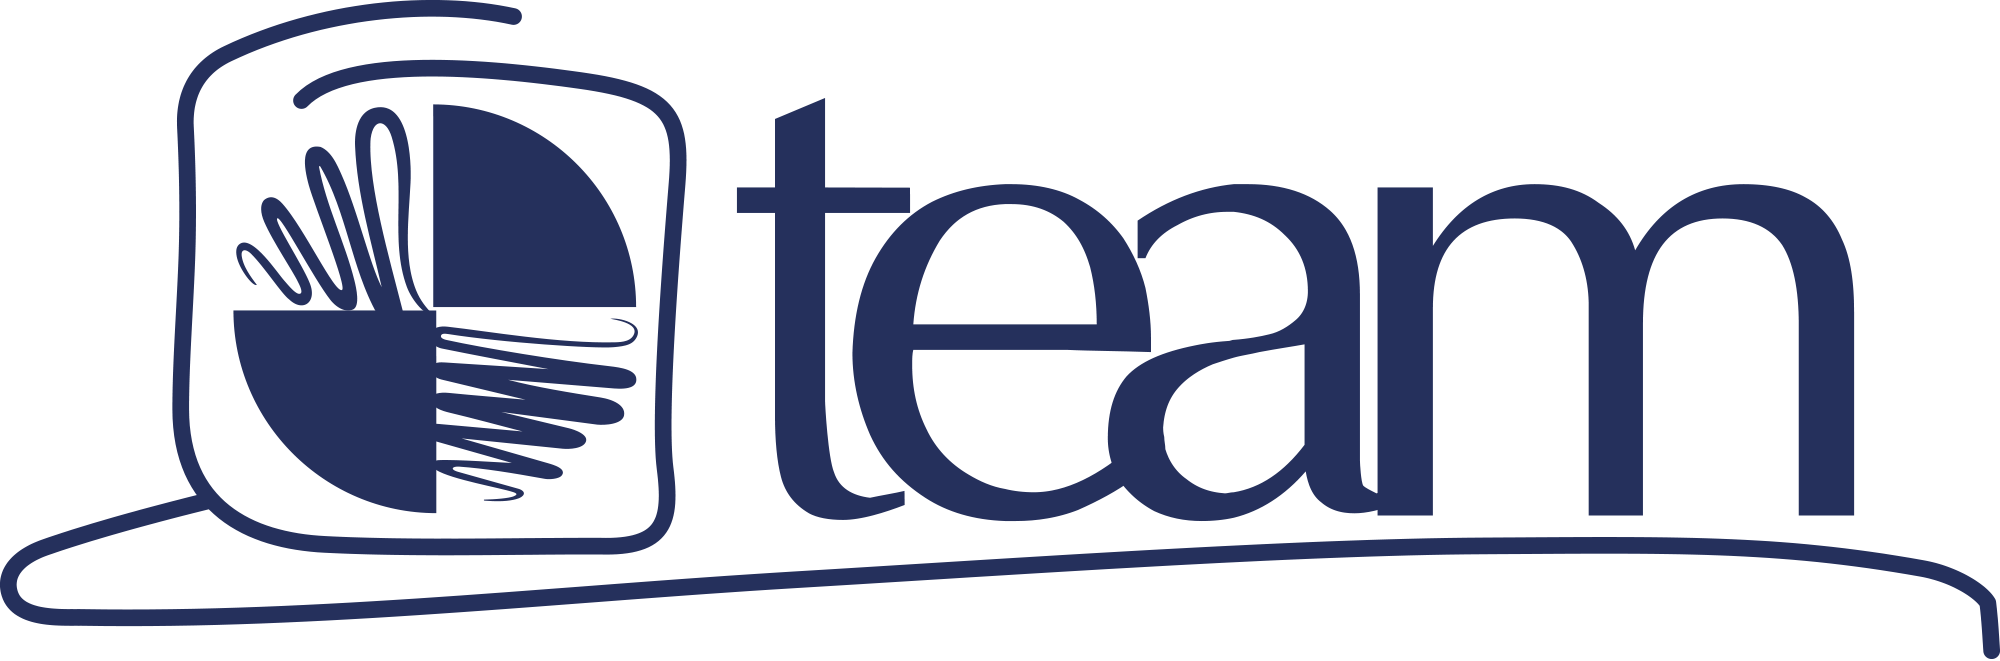 team-logo-azul